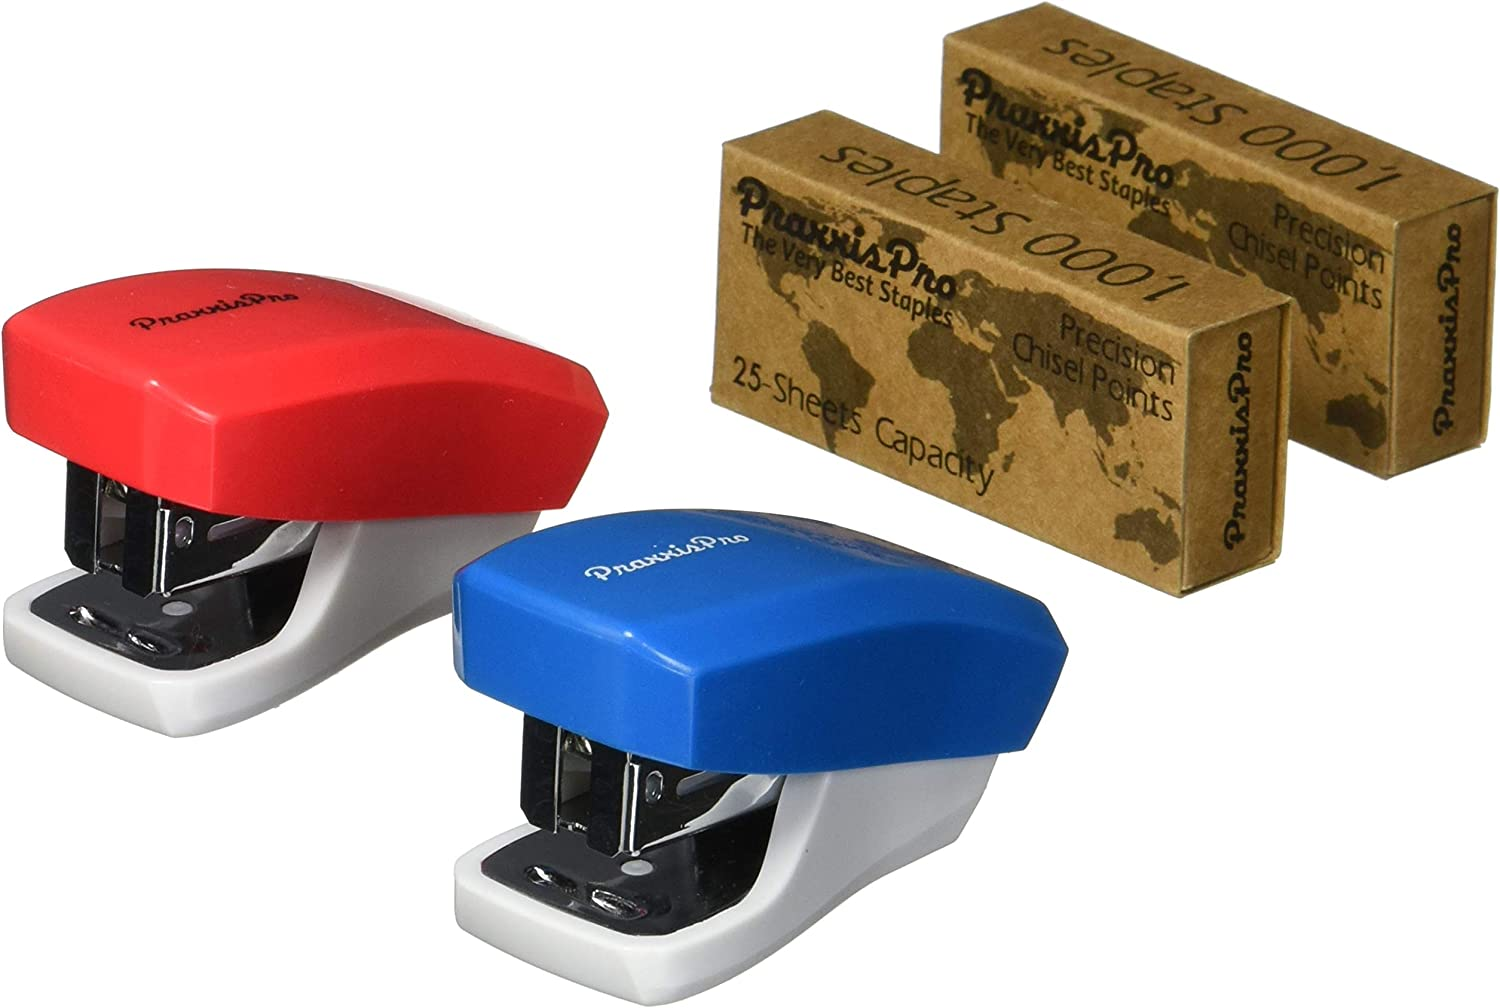 PraxxisPro, Mini Staplers, Built in Staple Remover, Staples 2 to 18 Sheets. Set of 2 (Blue, Red) …